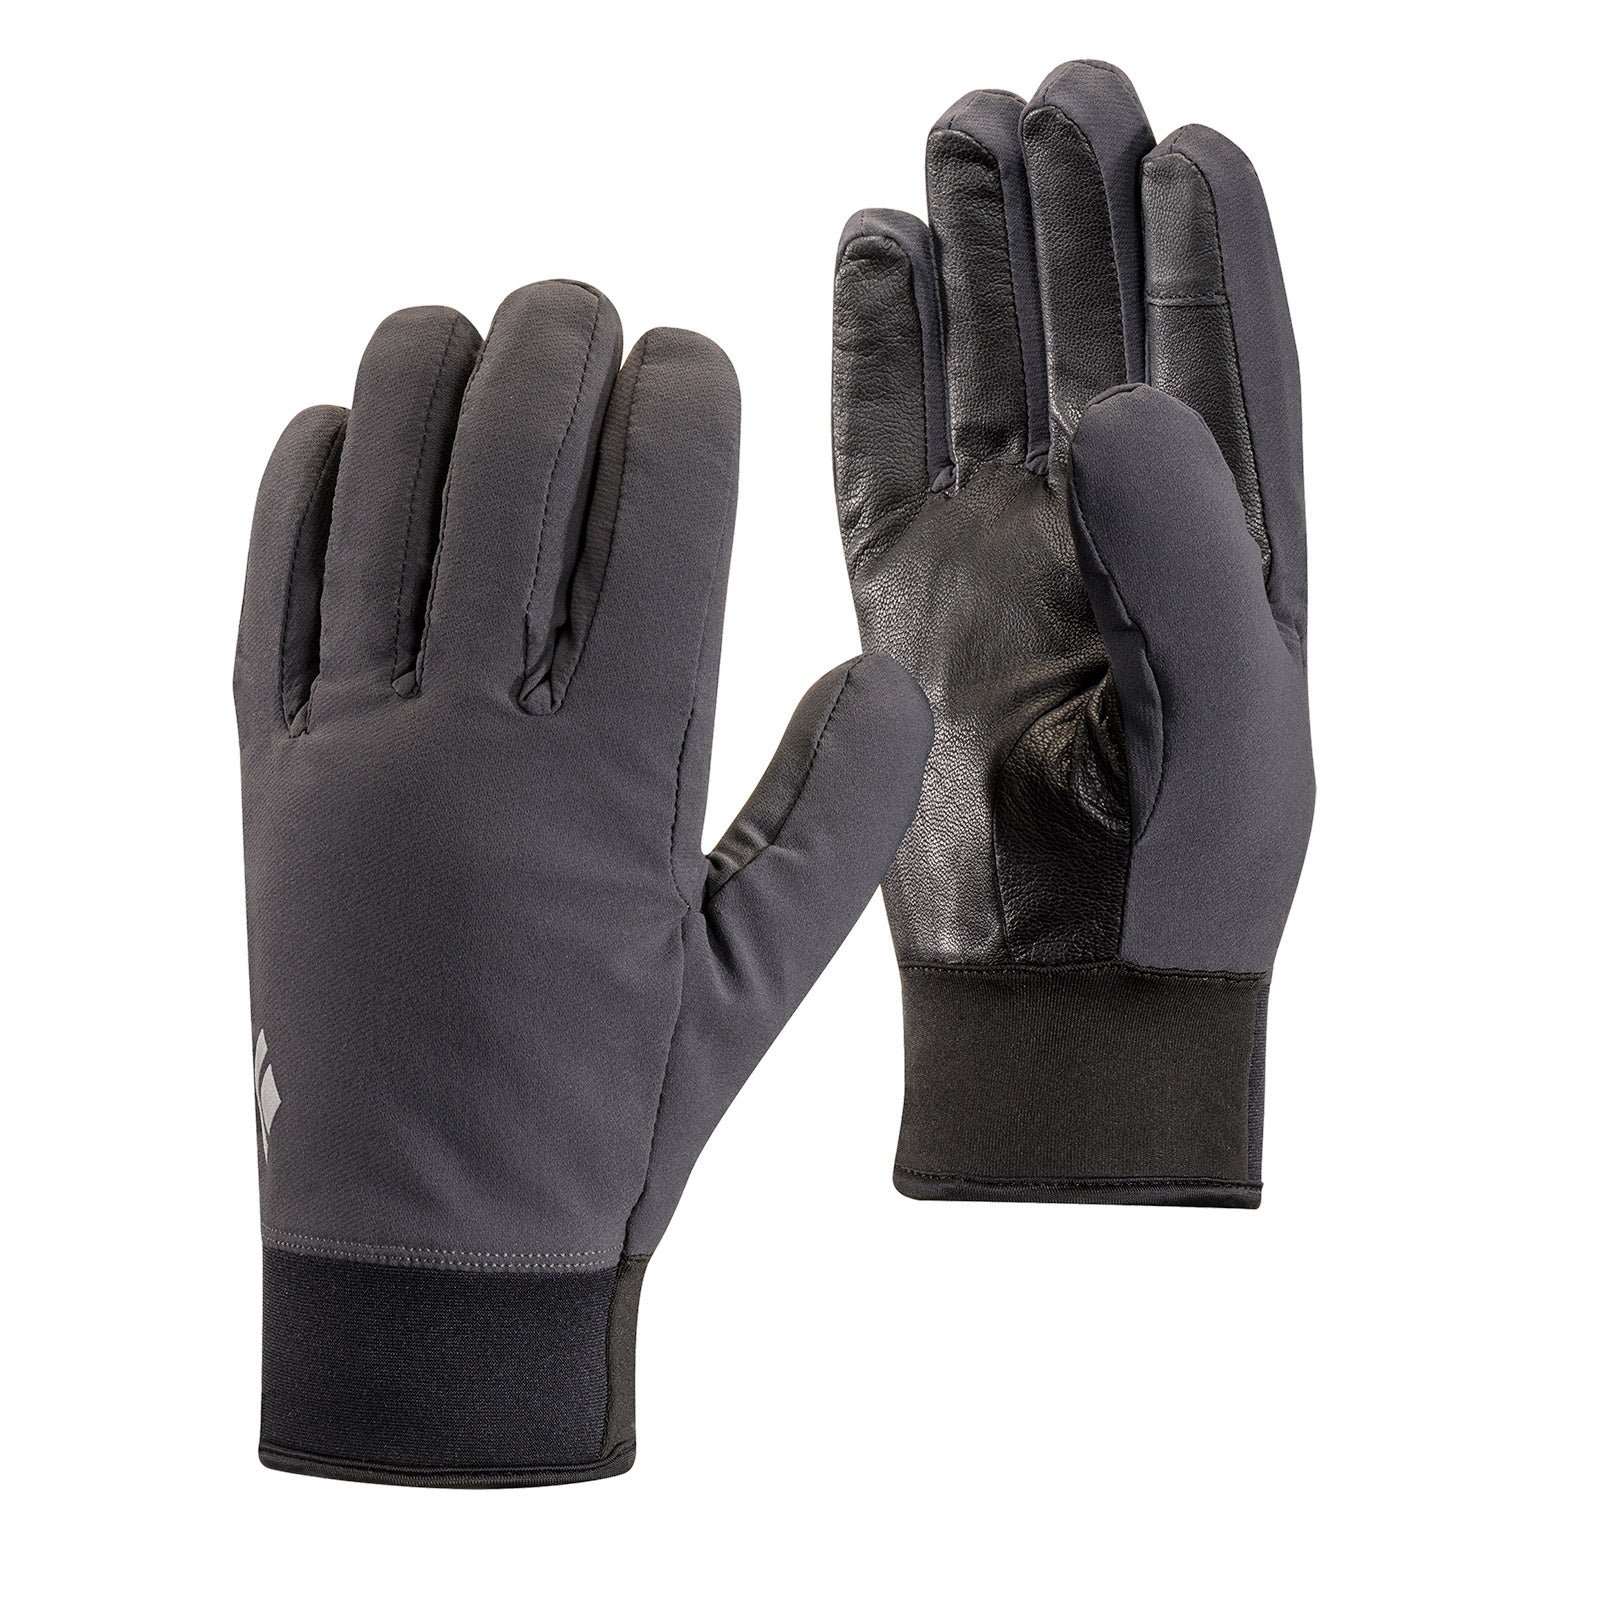 a pair of midweight softshell gloves